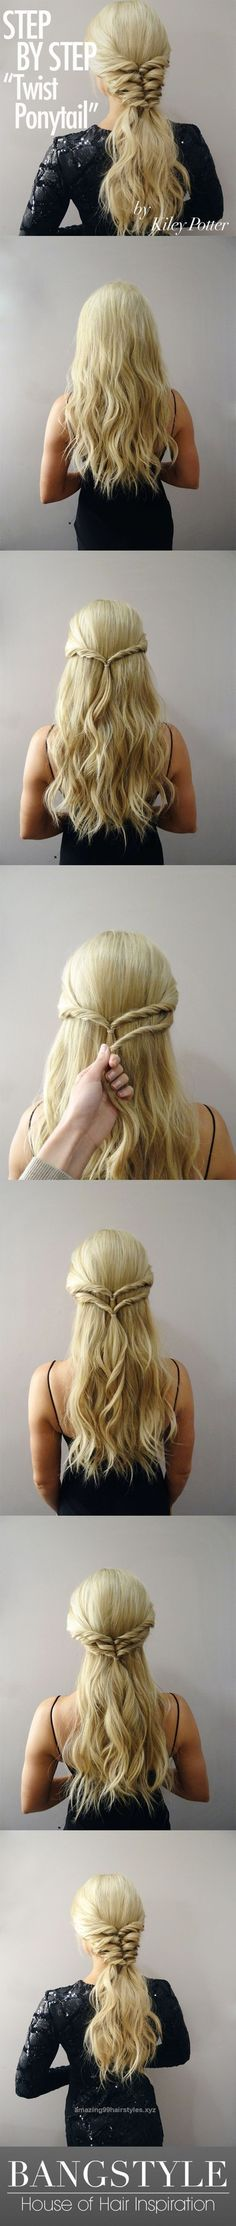 Insane See the latest #hairstyles on our tumblr! It's awsome. The post See the latest #hairstyles on our tumblr! It's awsome…. appeared first on Amazing Hairstyles .